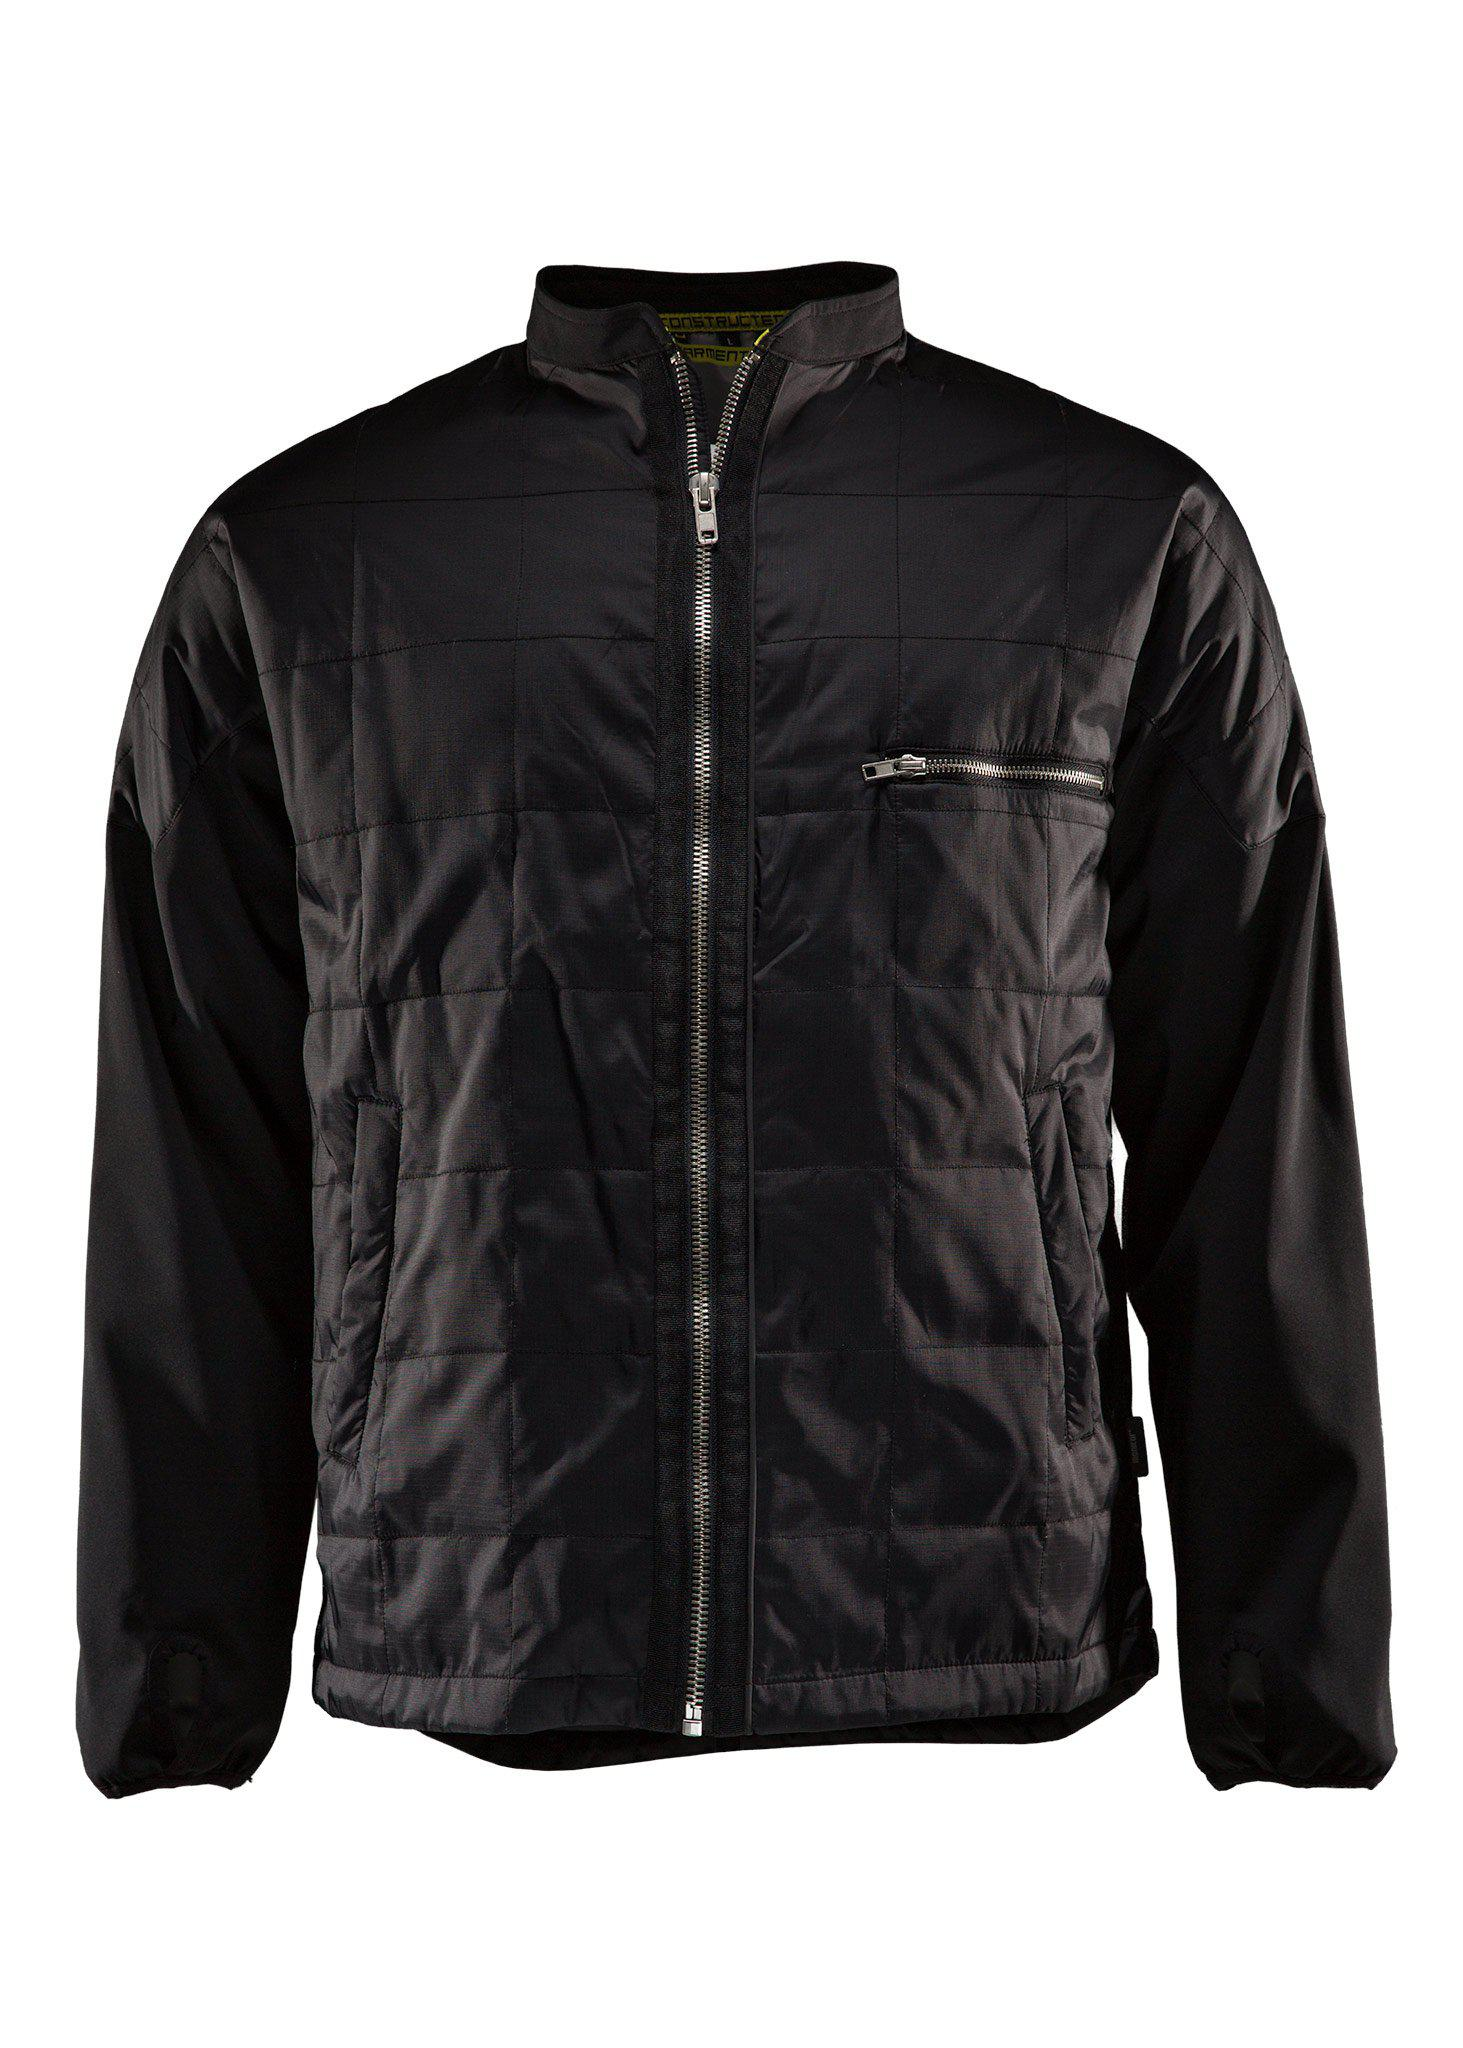 Monitor Lightweight jacket, Quilted jacket, Caviar black